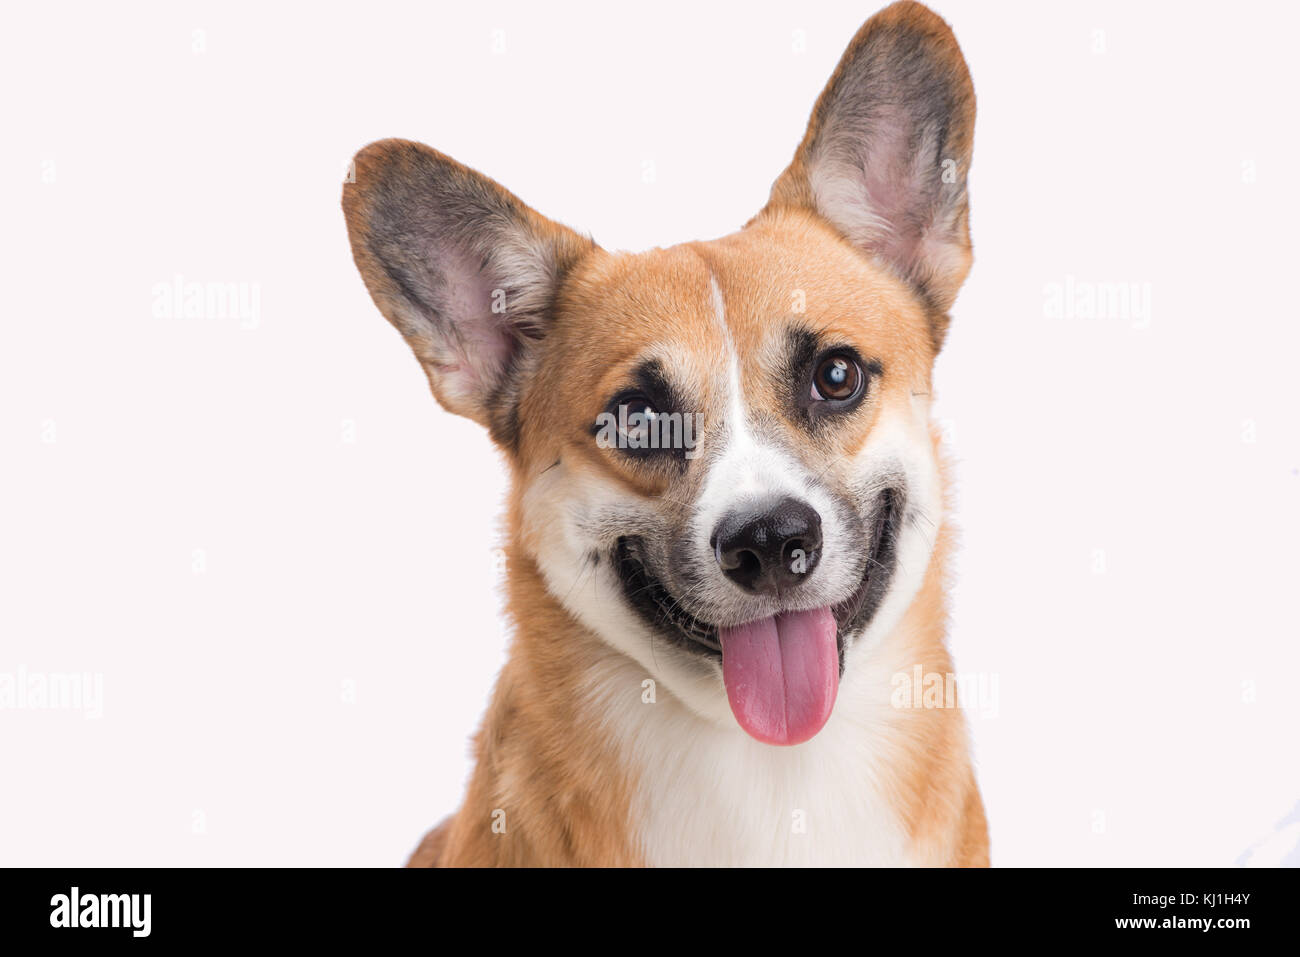 Portrait of a Welsh corgi Pembroke dog in studio in front of a white background - Stock Image